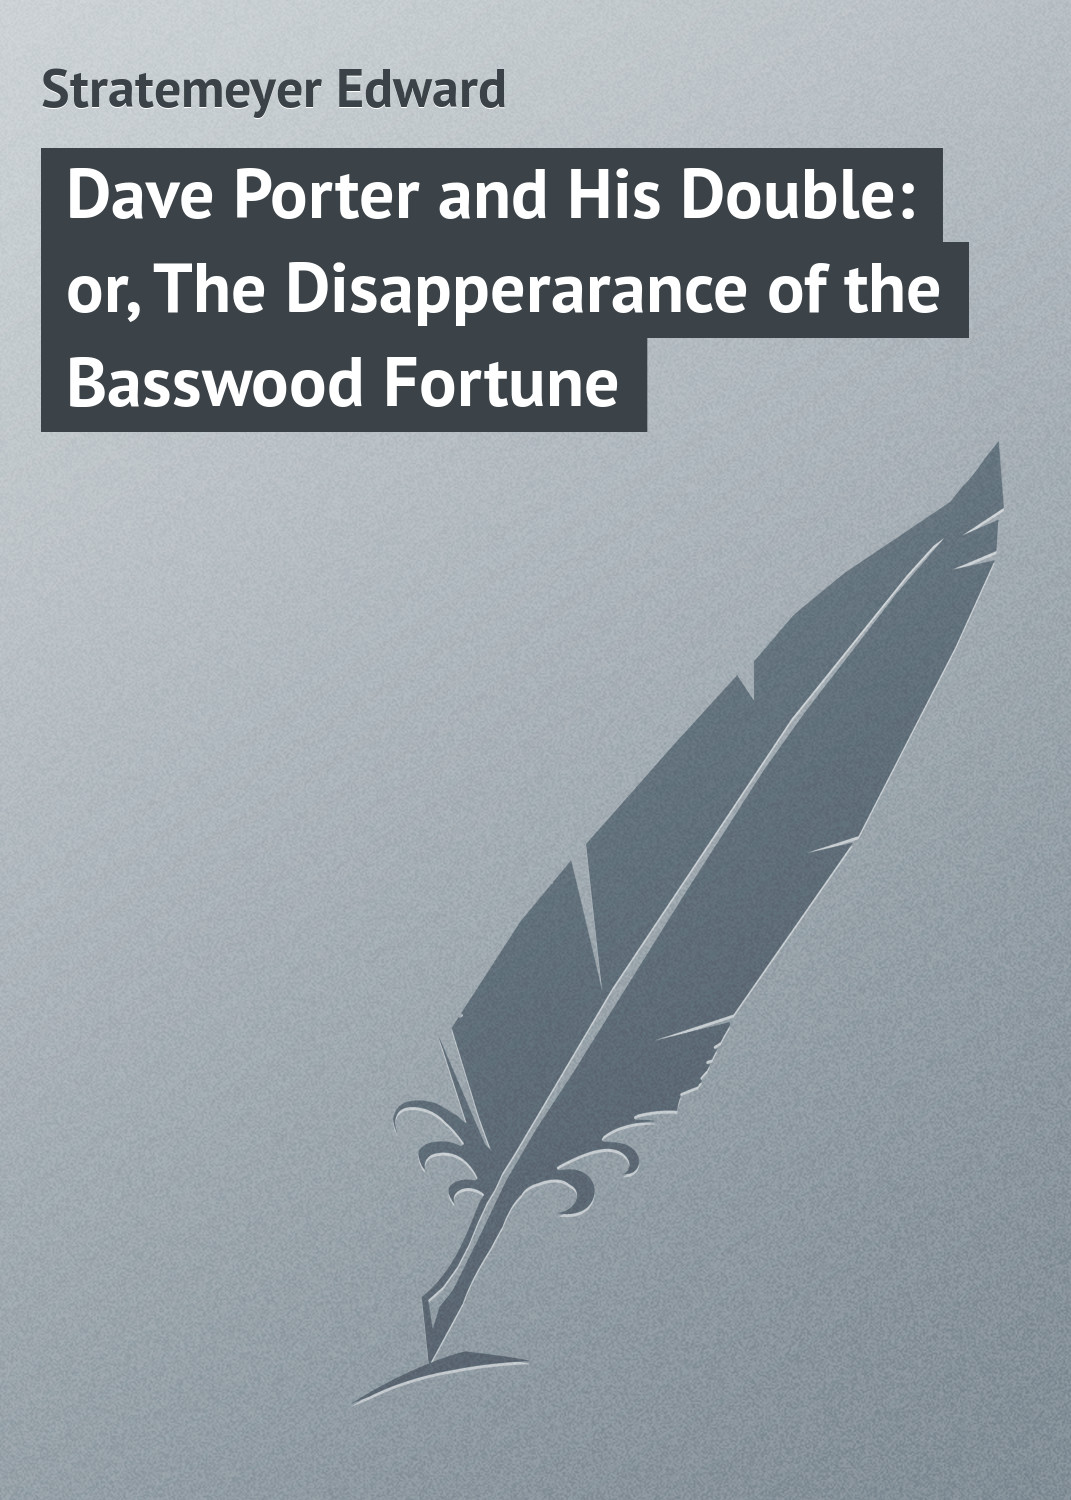 Stratemeyer Edward Dave Porter and His Double: or, The Disapperarance of the Basswood Fortune